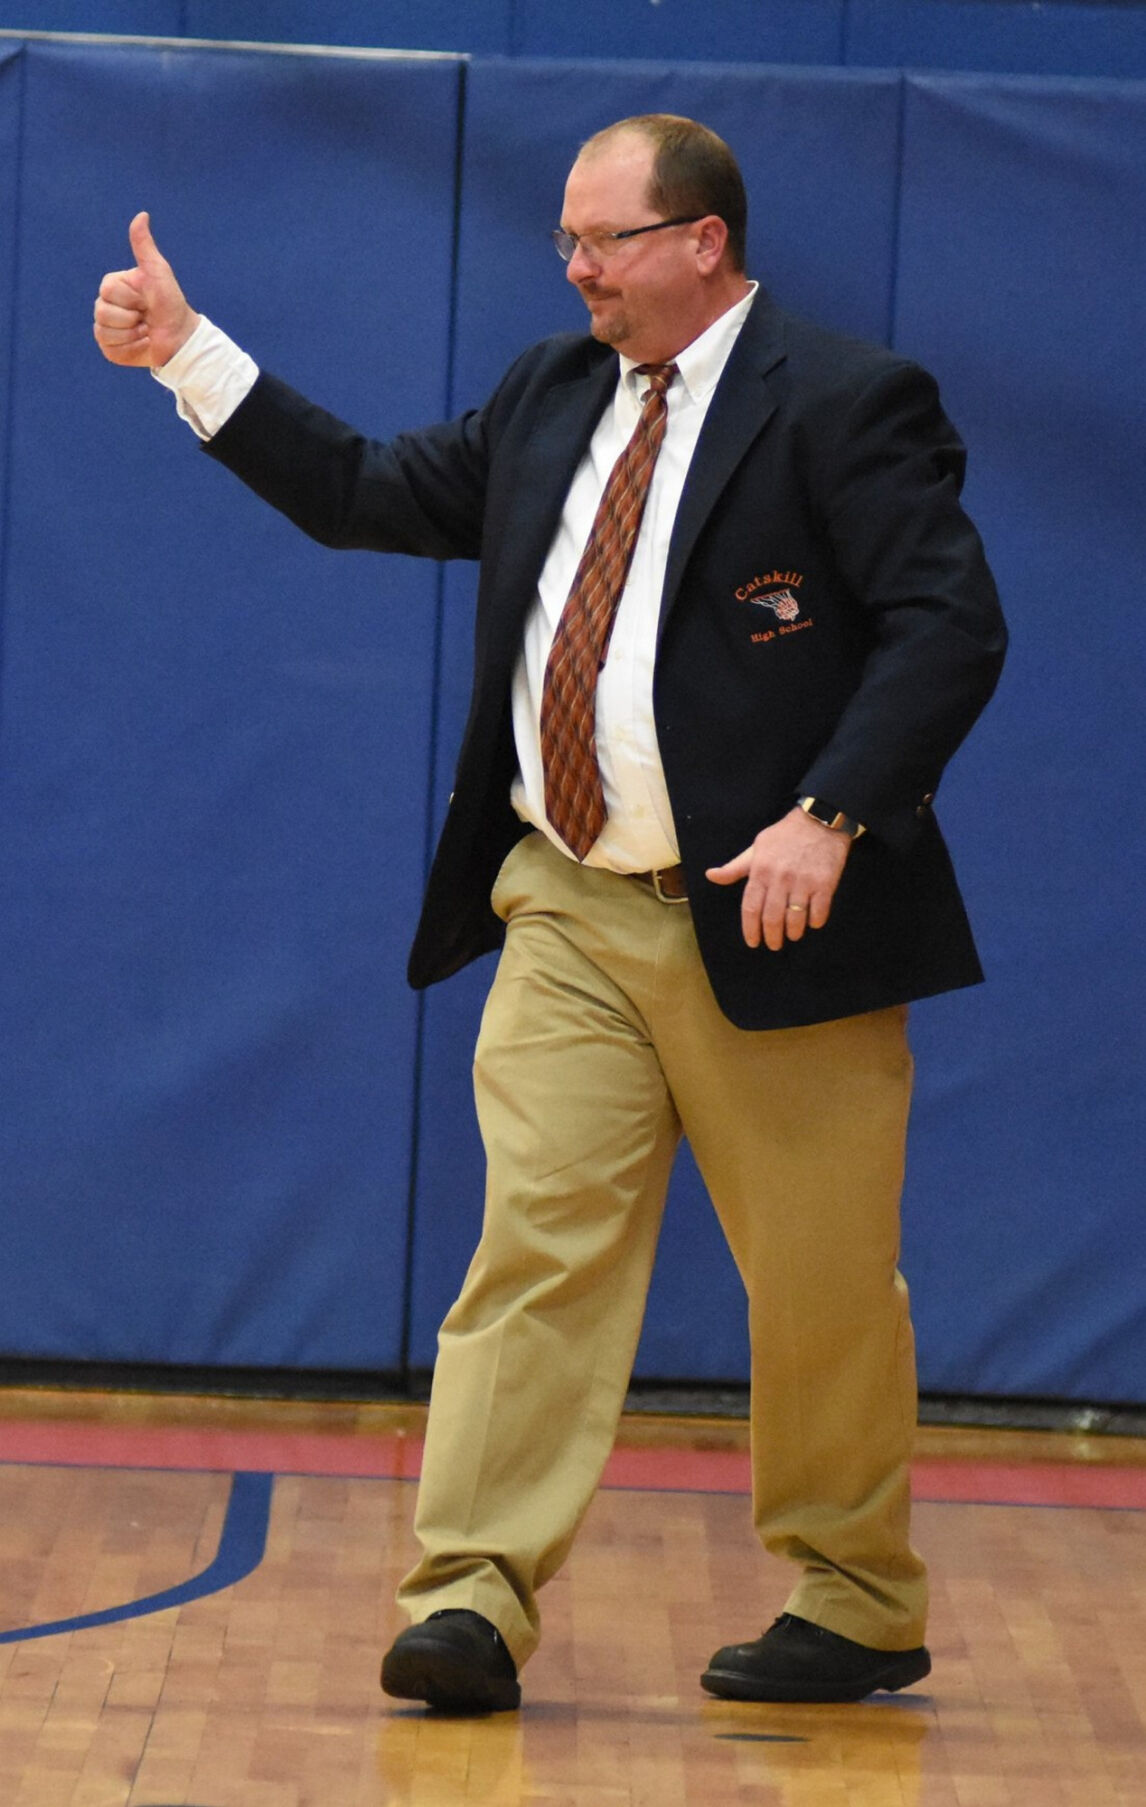 End of an era for Catskill basketball